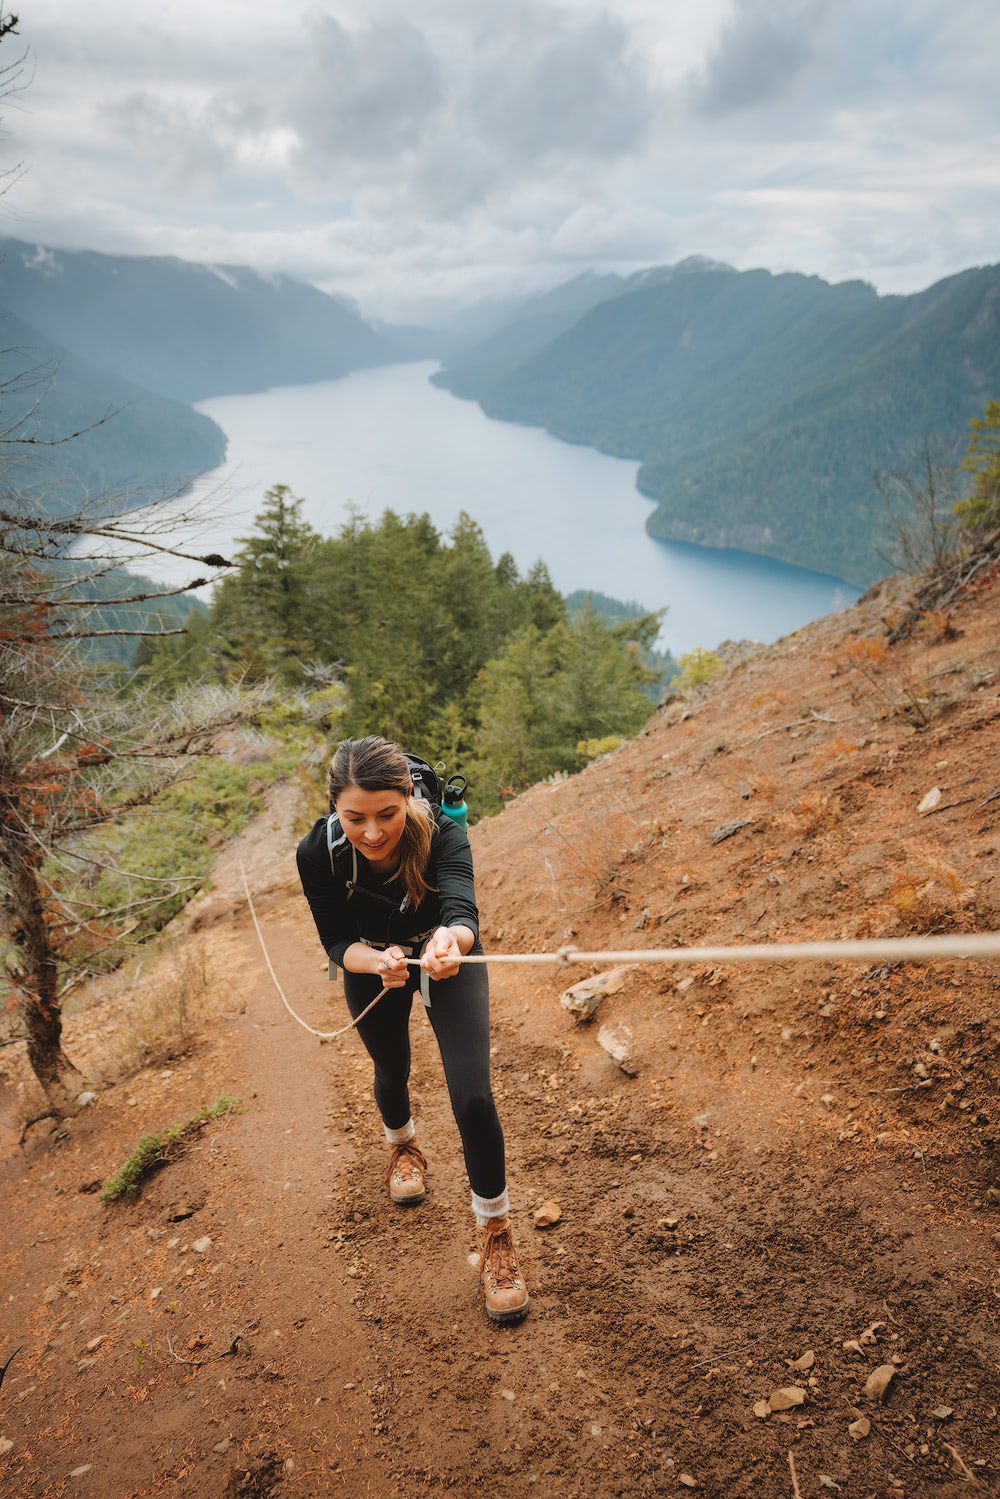 Olympic National Park Adventure Getaway 24 Hour Itinerary from Seattle Renee Roaming Mount Storm King Hike 4